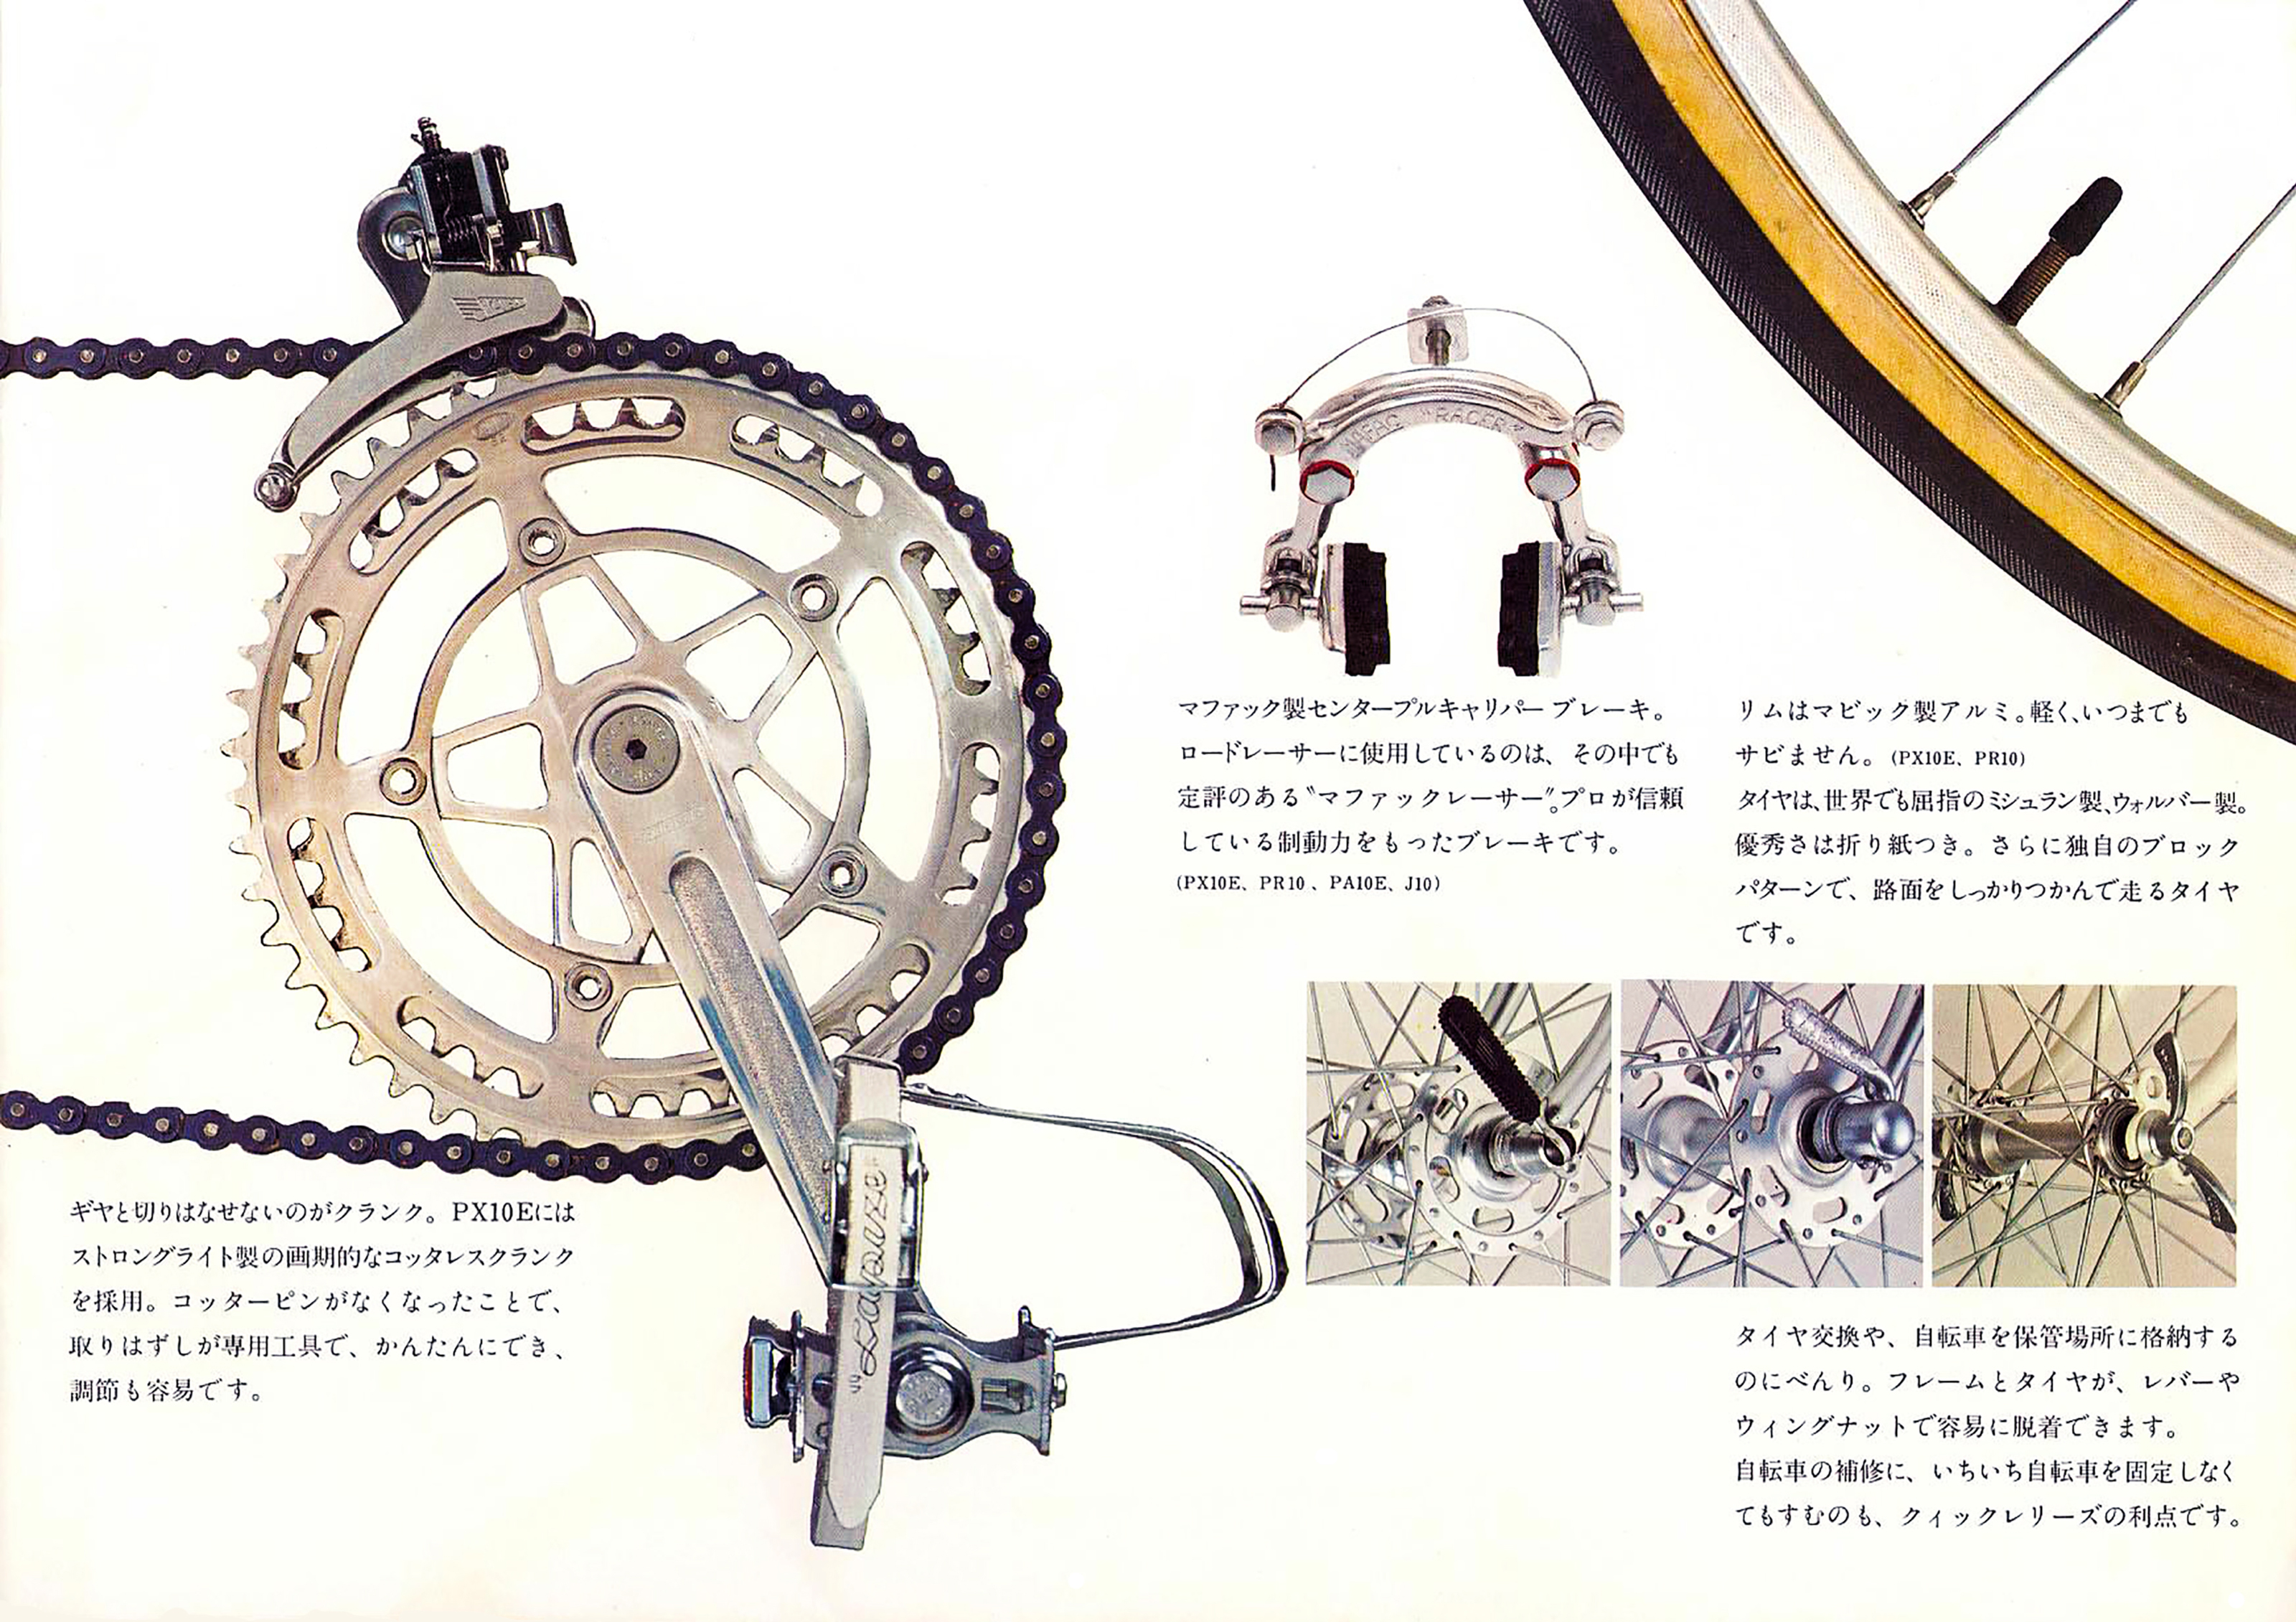 ebykr-peugeot-japan-catalog-1973-stronglight-93-double-crankset